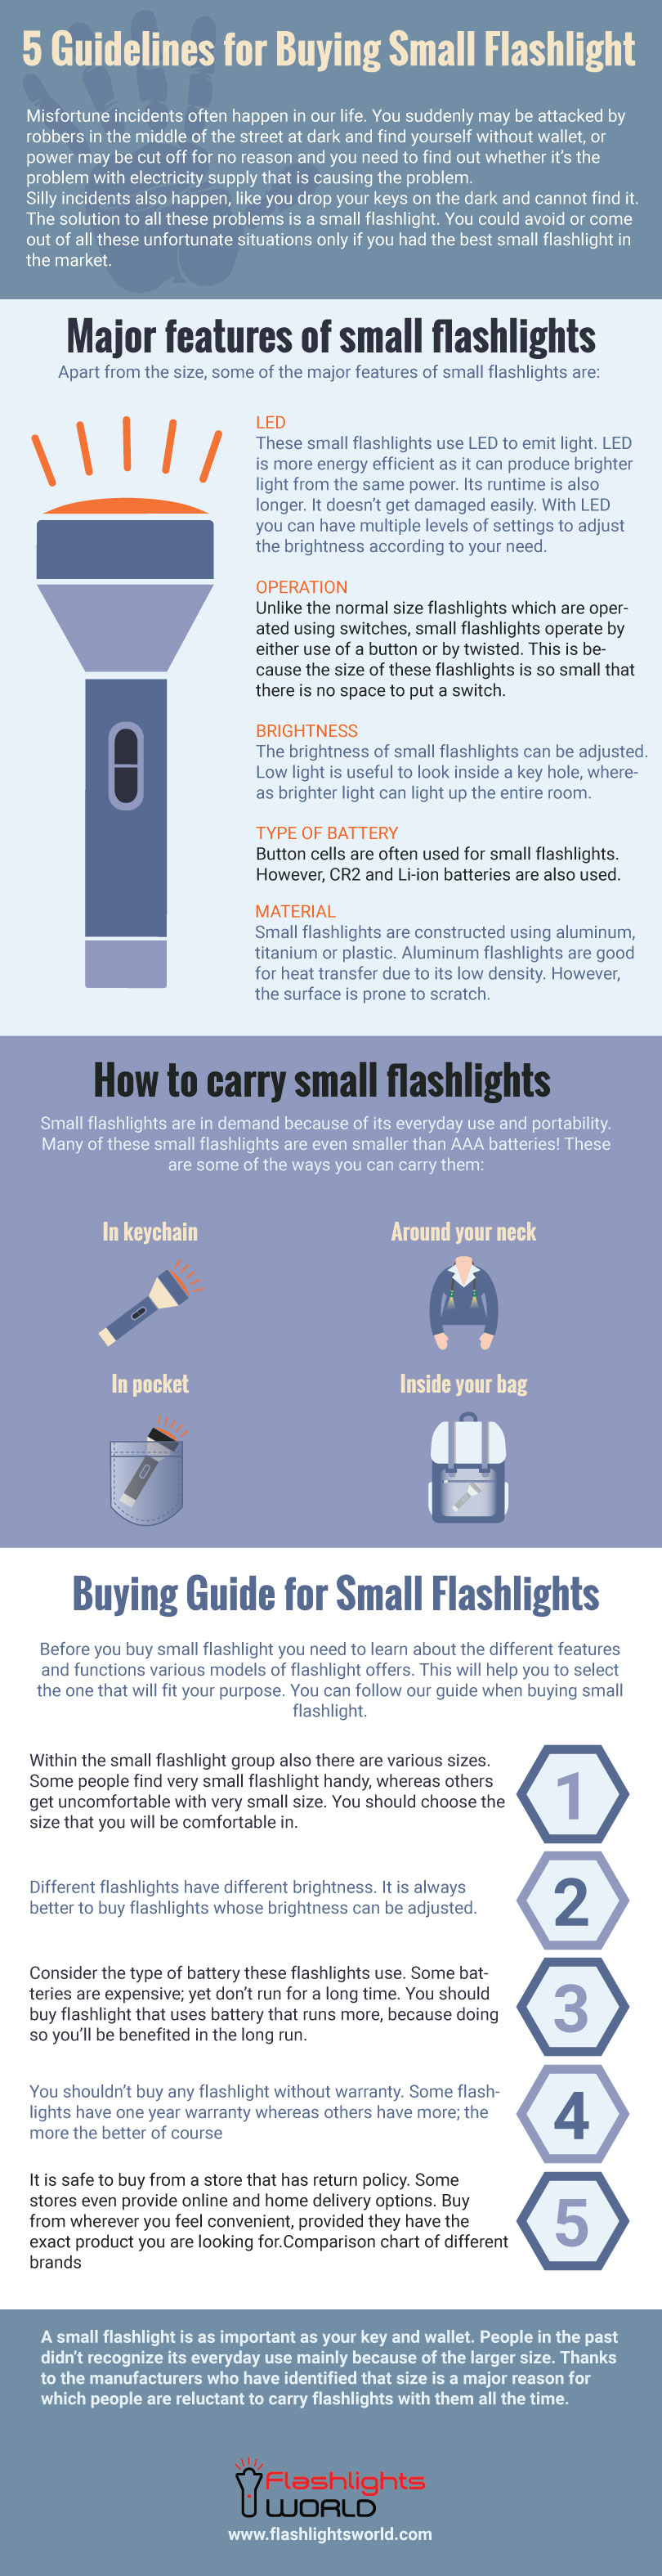 5-guidelines-for-buying-small-flashlight-your-friend-in-shadows